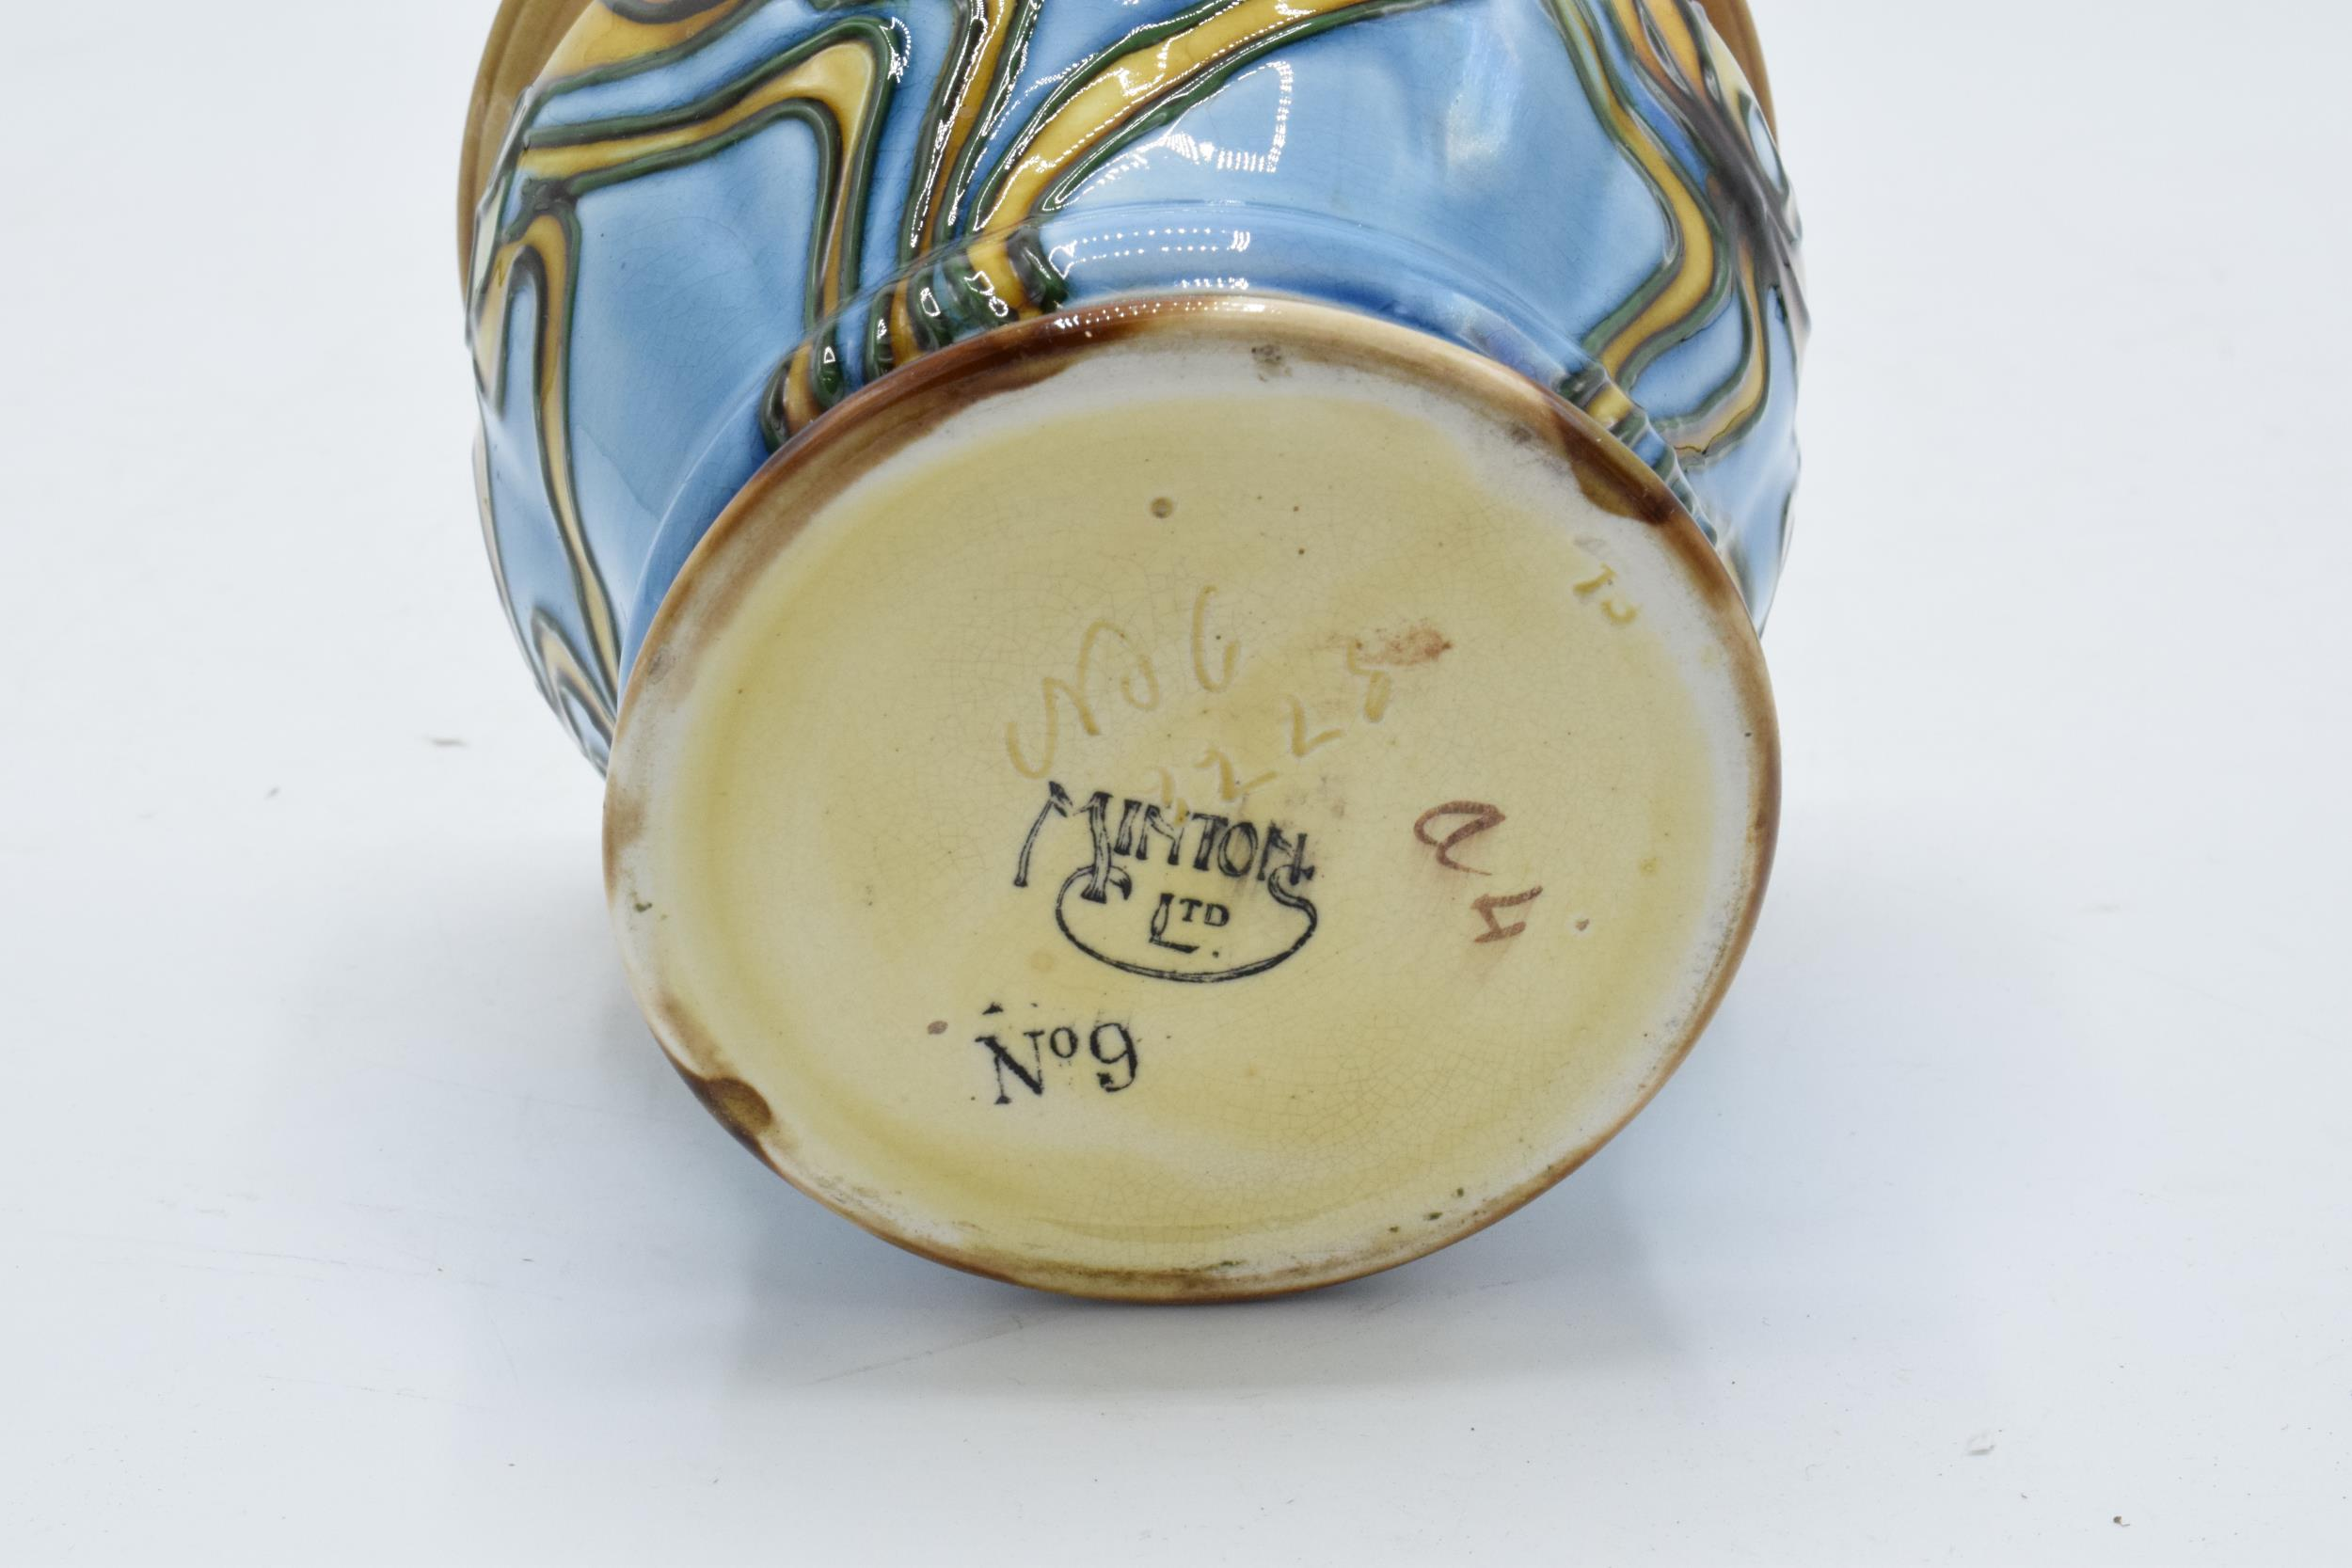 Minton Secessionist Jardinière with a stylised design 'No. 9'. 11cm tall. 12.5 diameter. Condition - Image 6 of 6